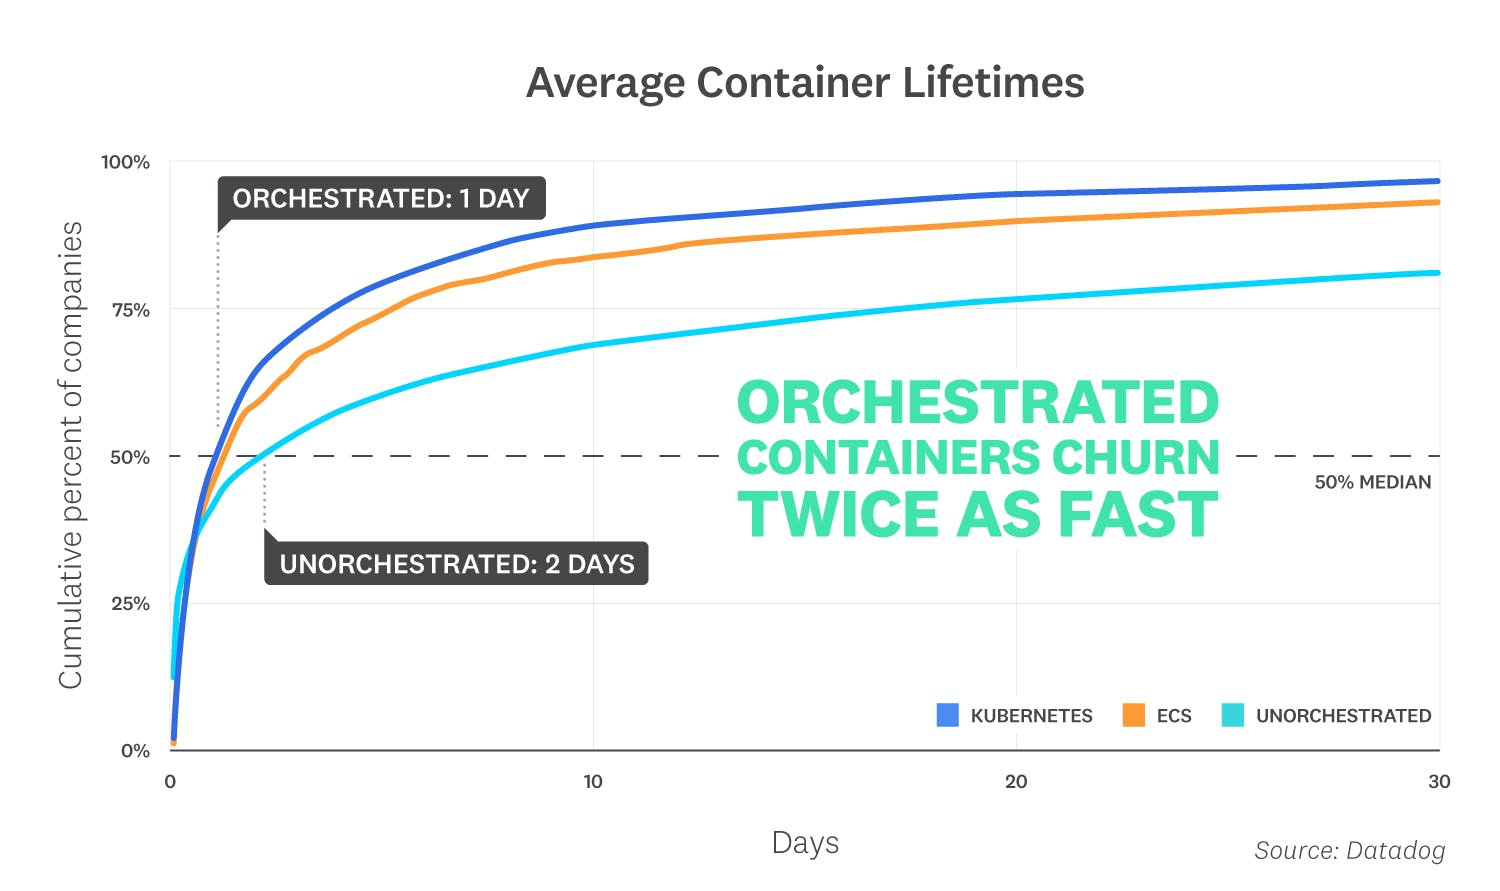 container-report-2019/container-report-2019-fact-5